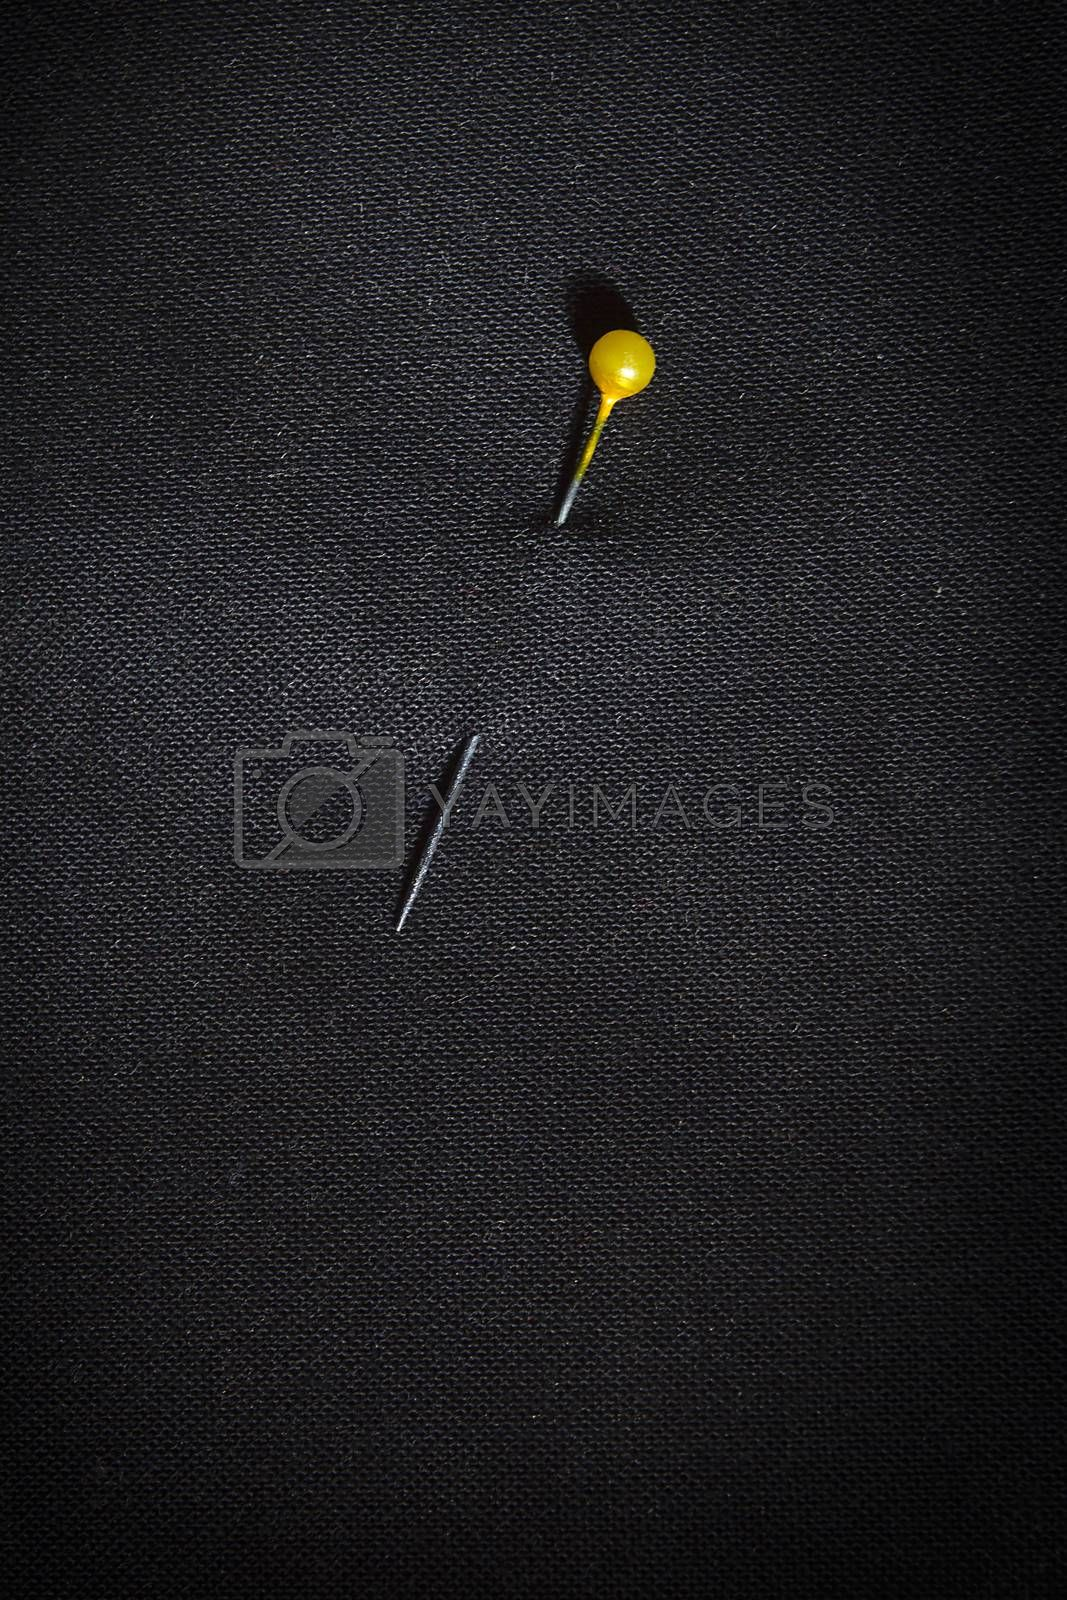 Pin with yellow head in black fabric